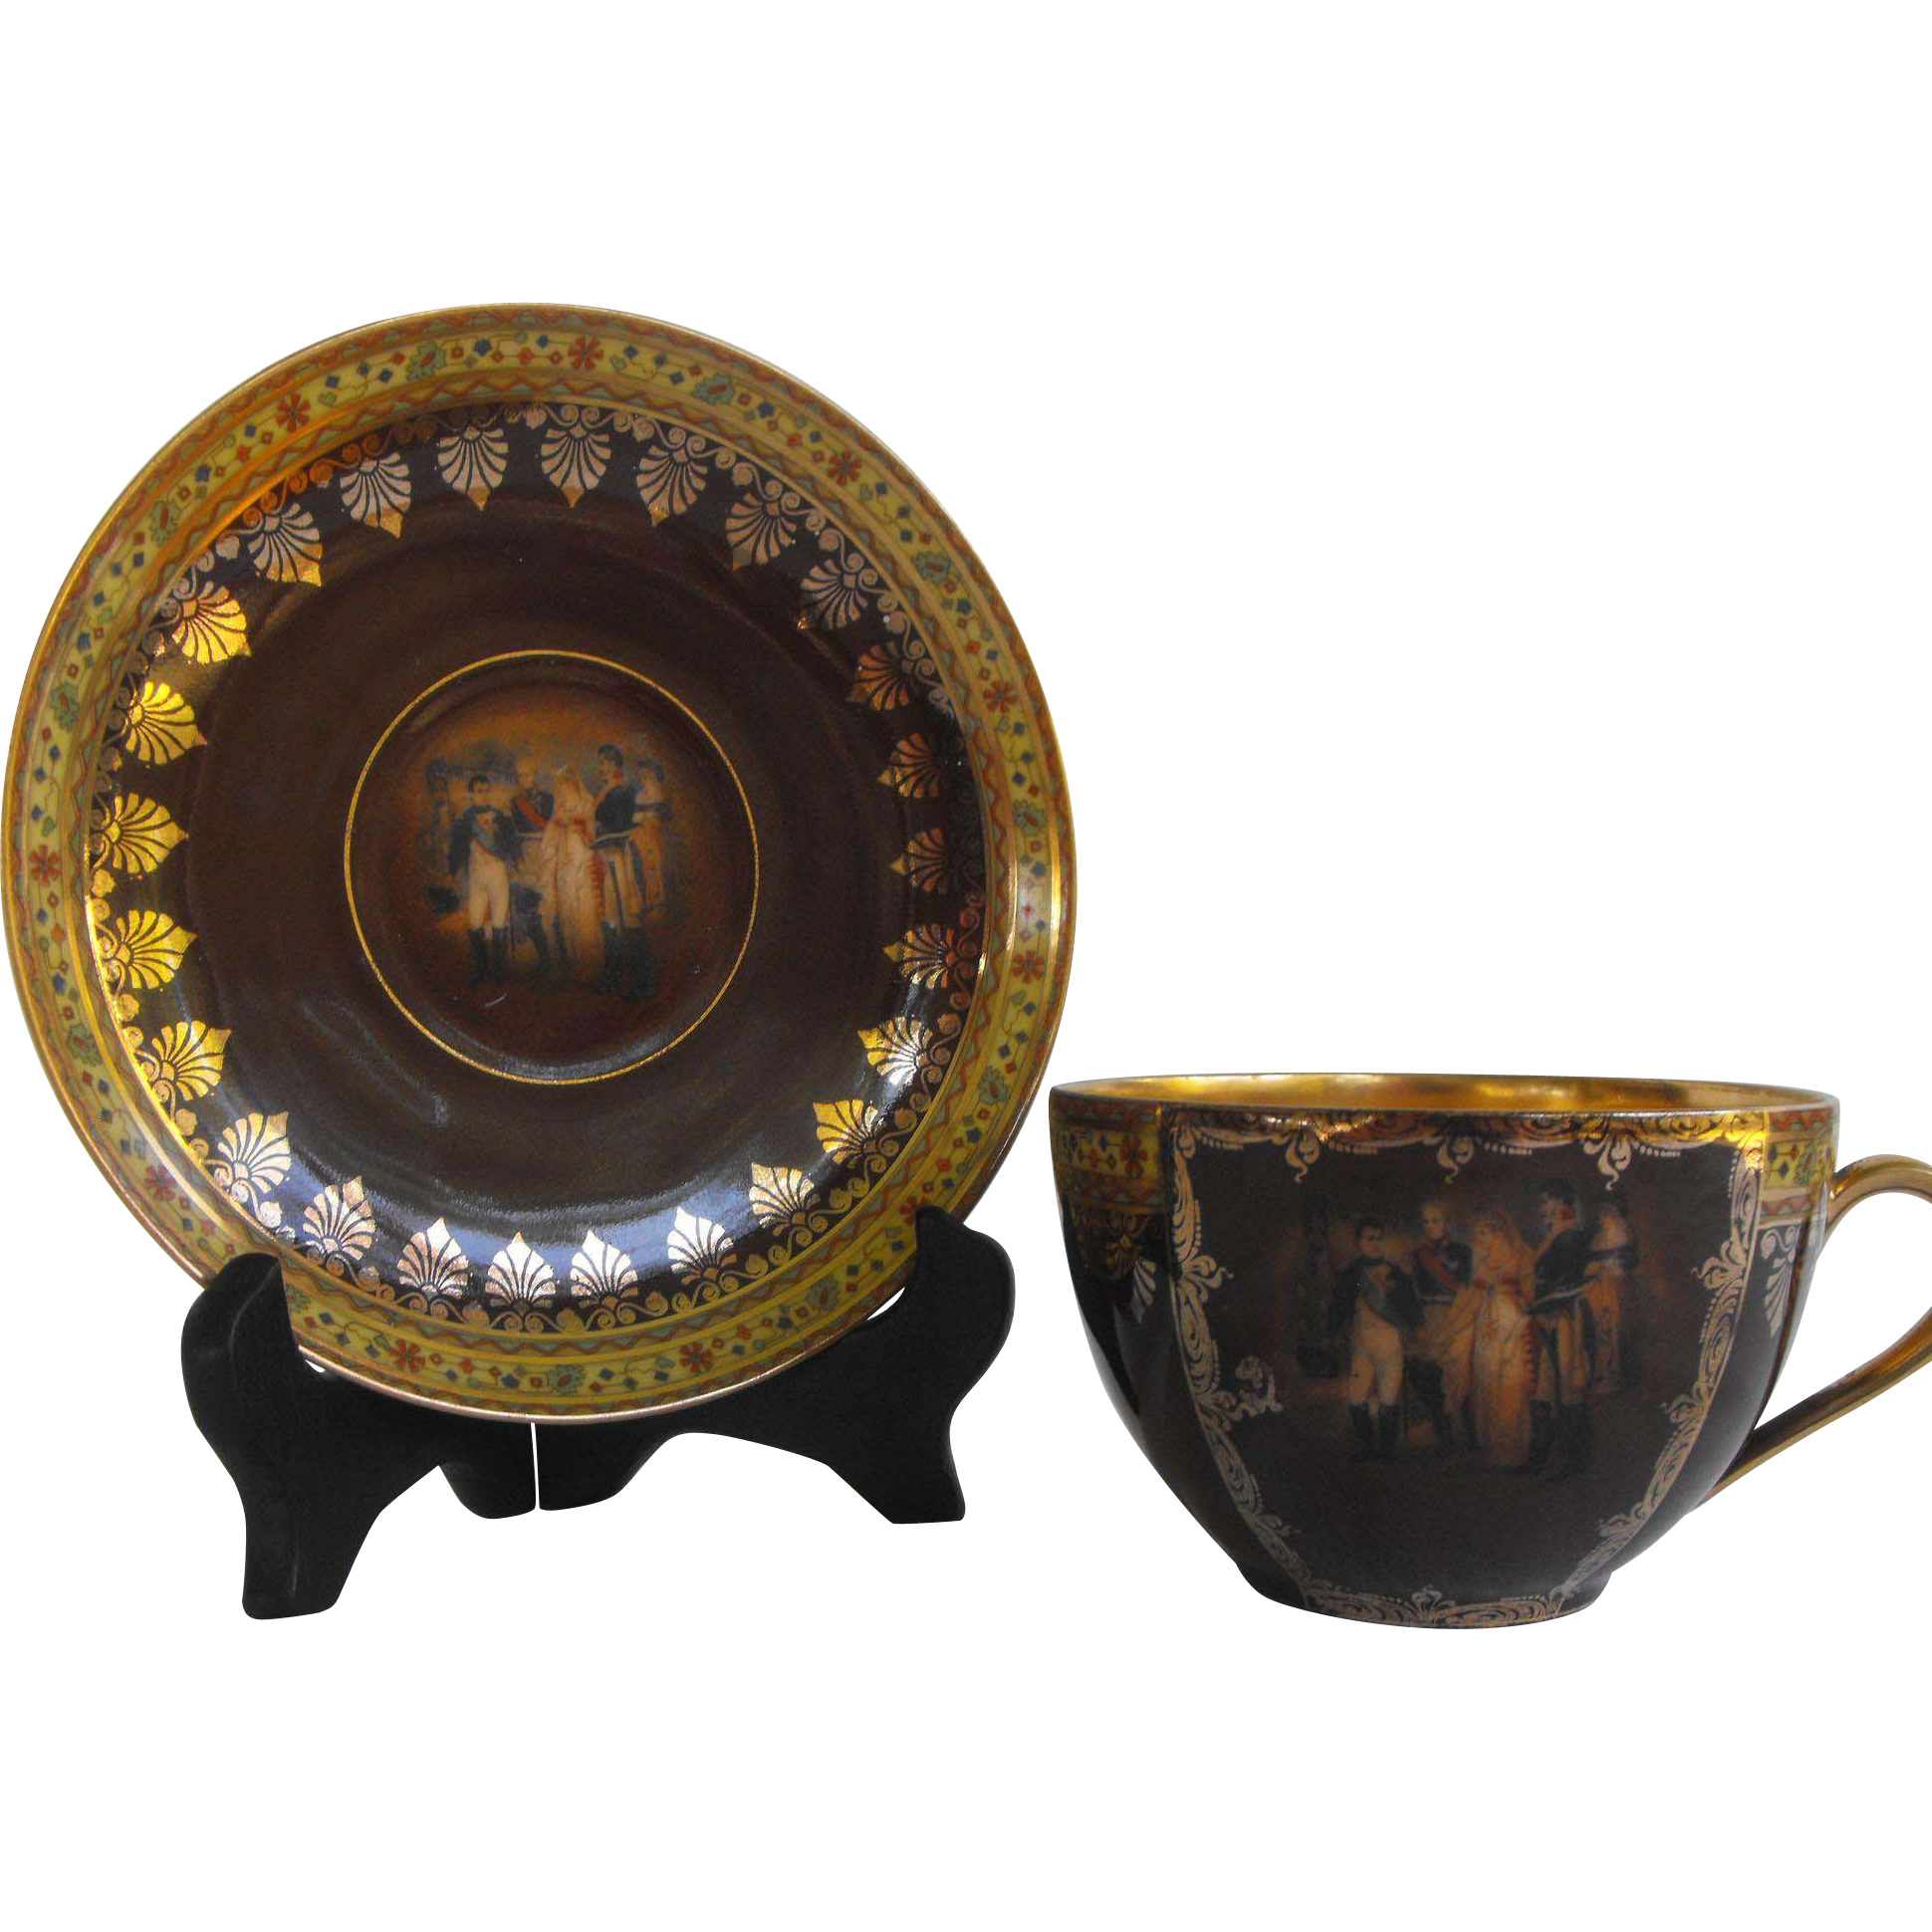 Friedrich Simon Carlsbad   Portrait Cup and Saucer   1900-1945